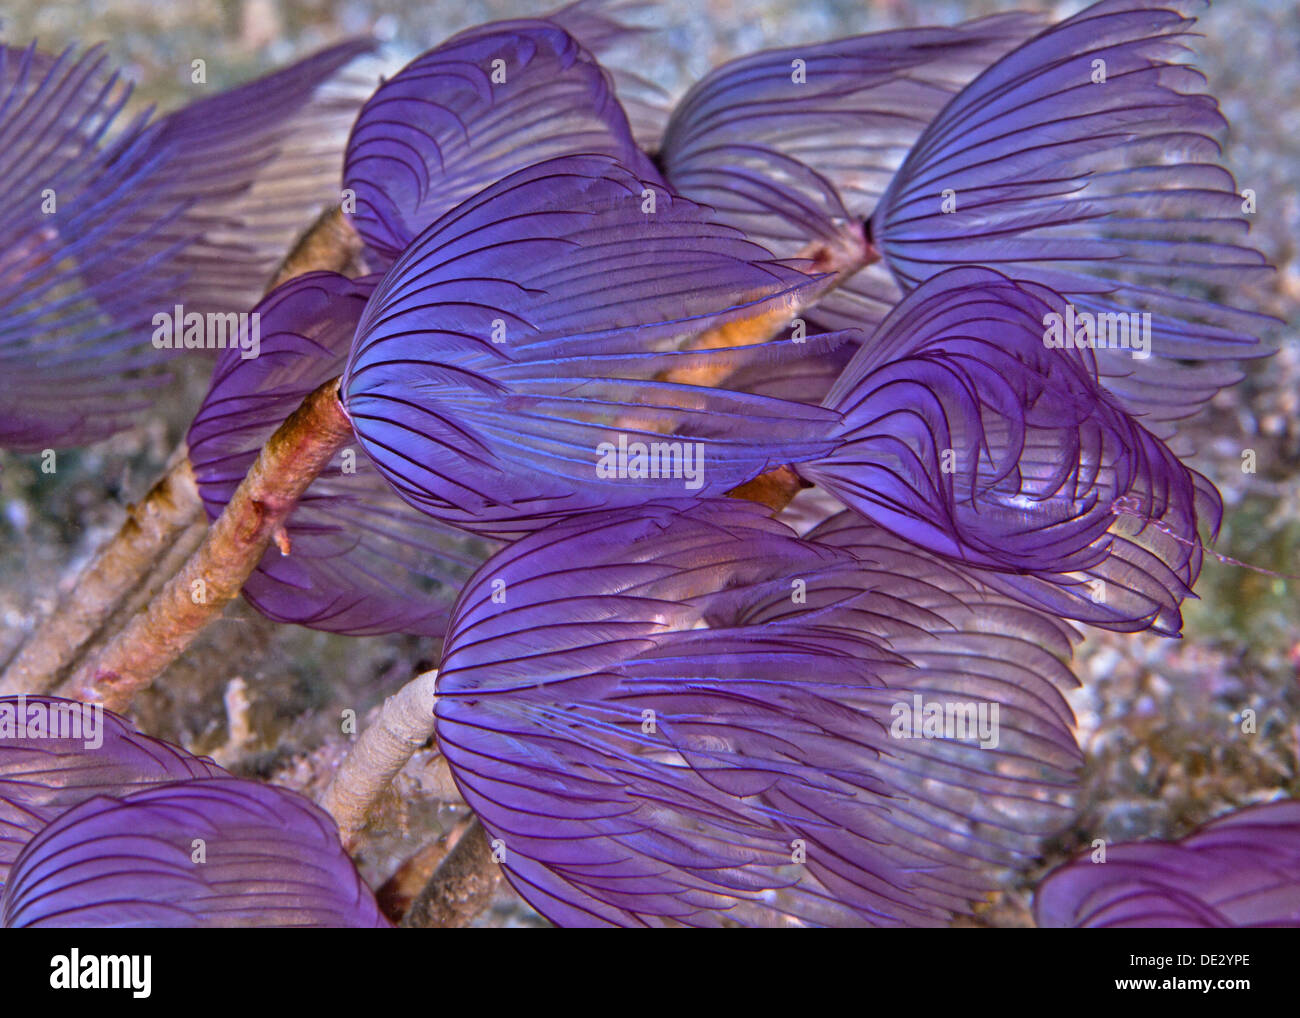 Purple featherduster worms rippling in ocean current. Puerto Galera, Philippines. Stock Photo